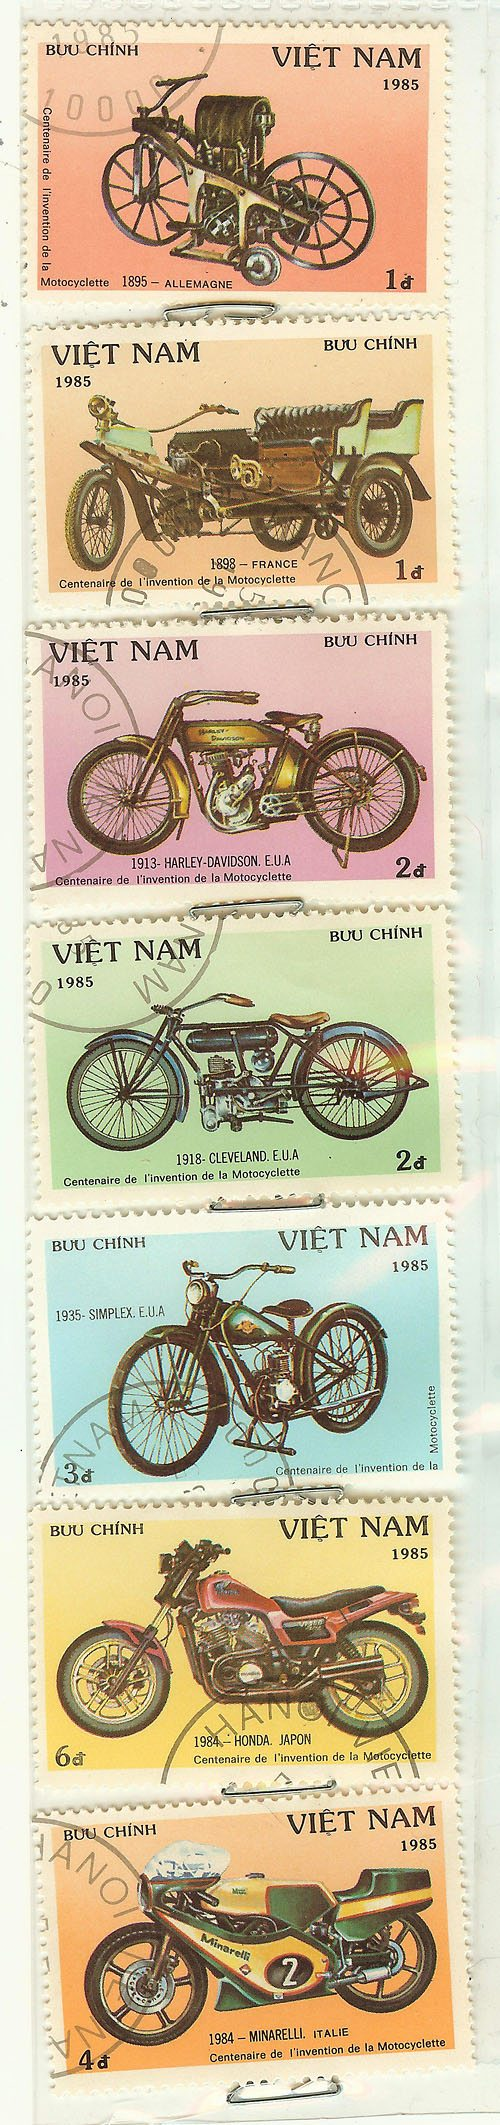 Motorcycle Stamps - Viet Nam